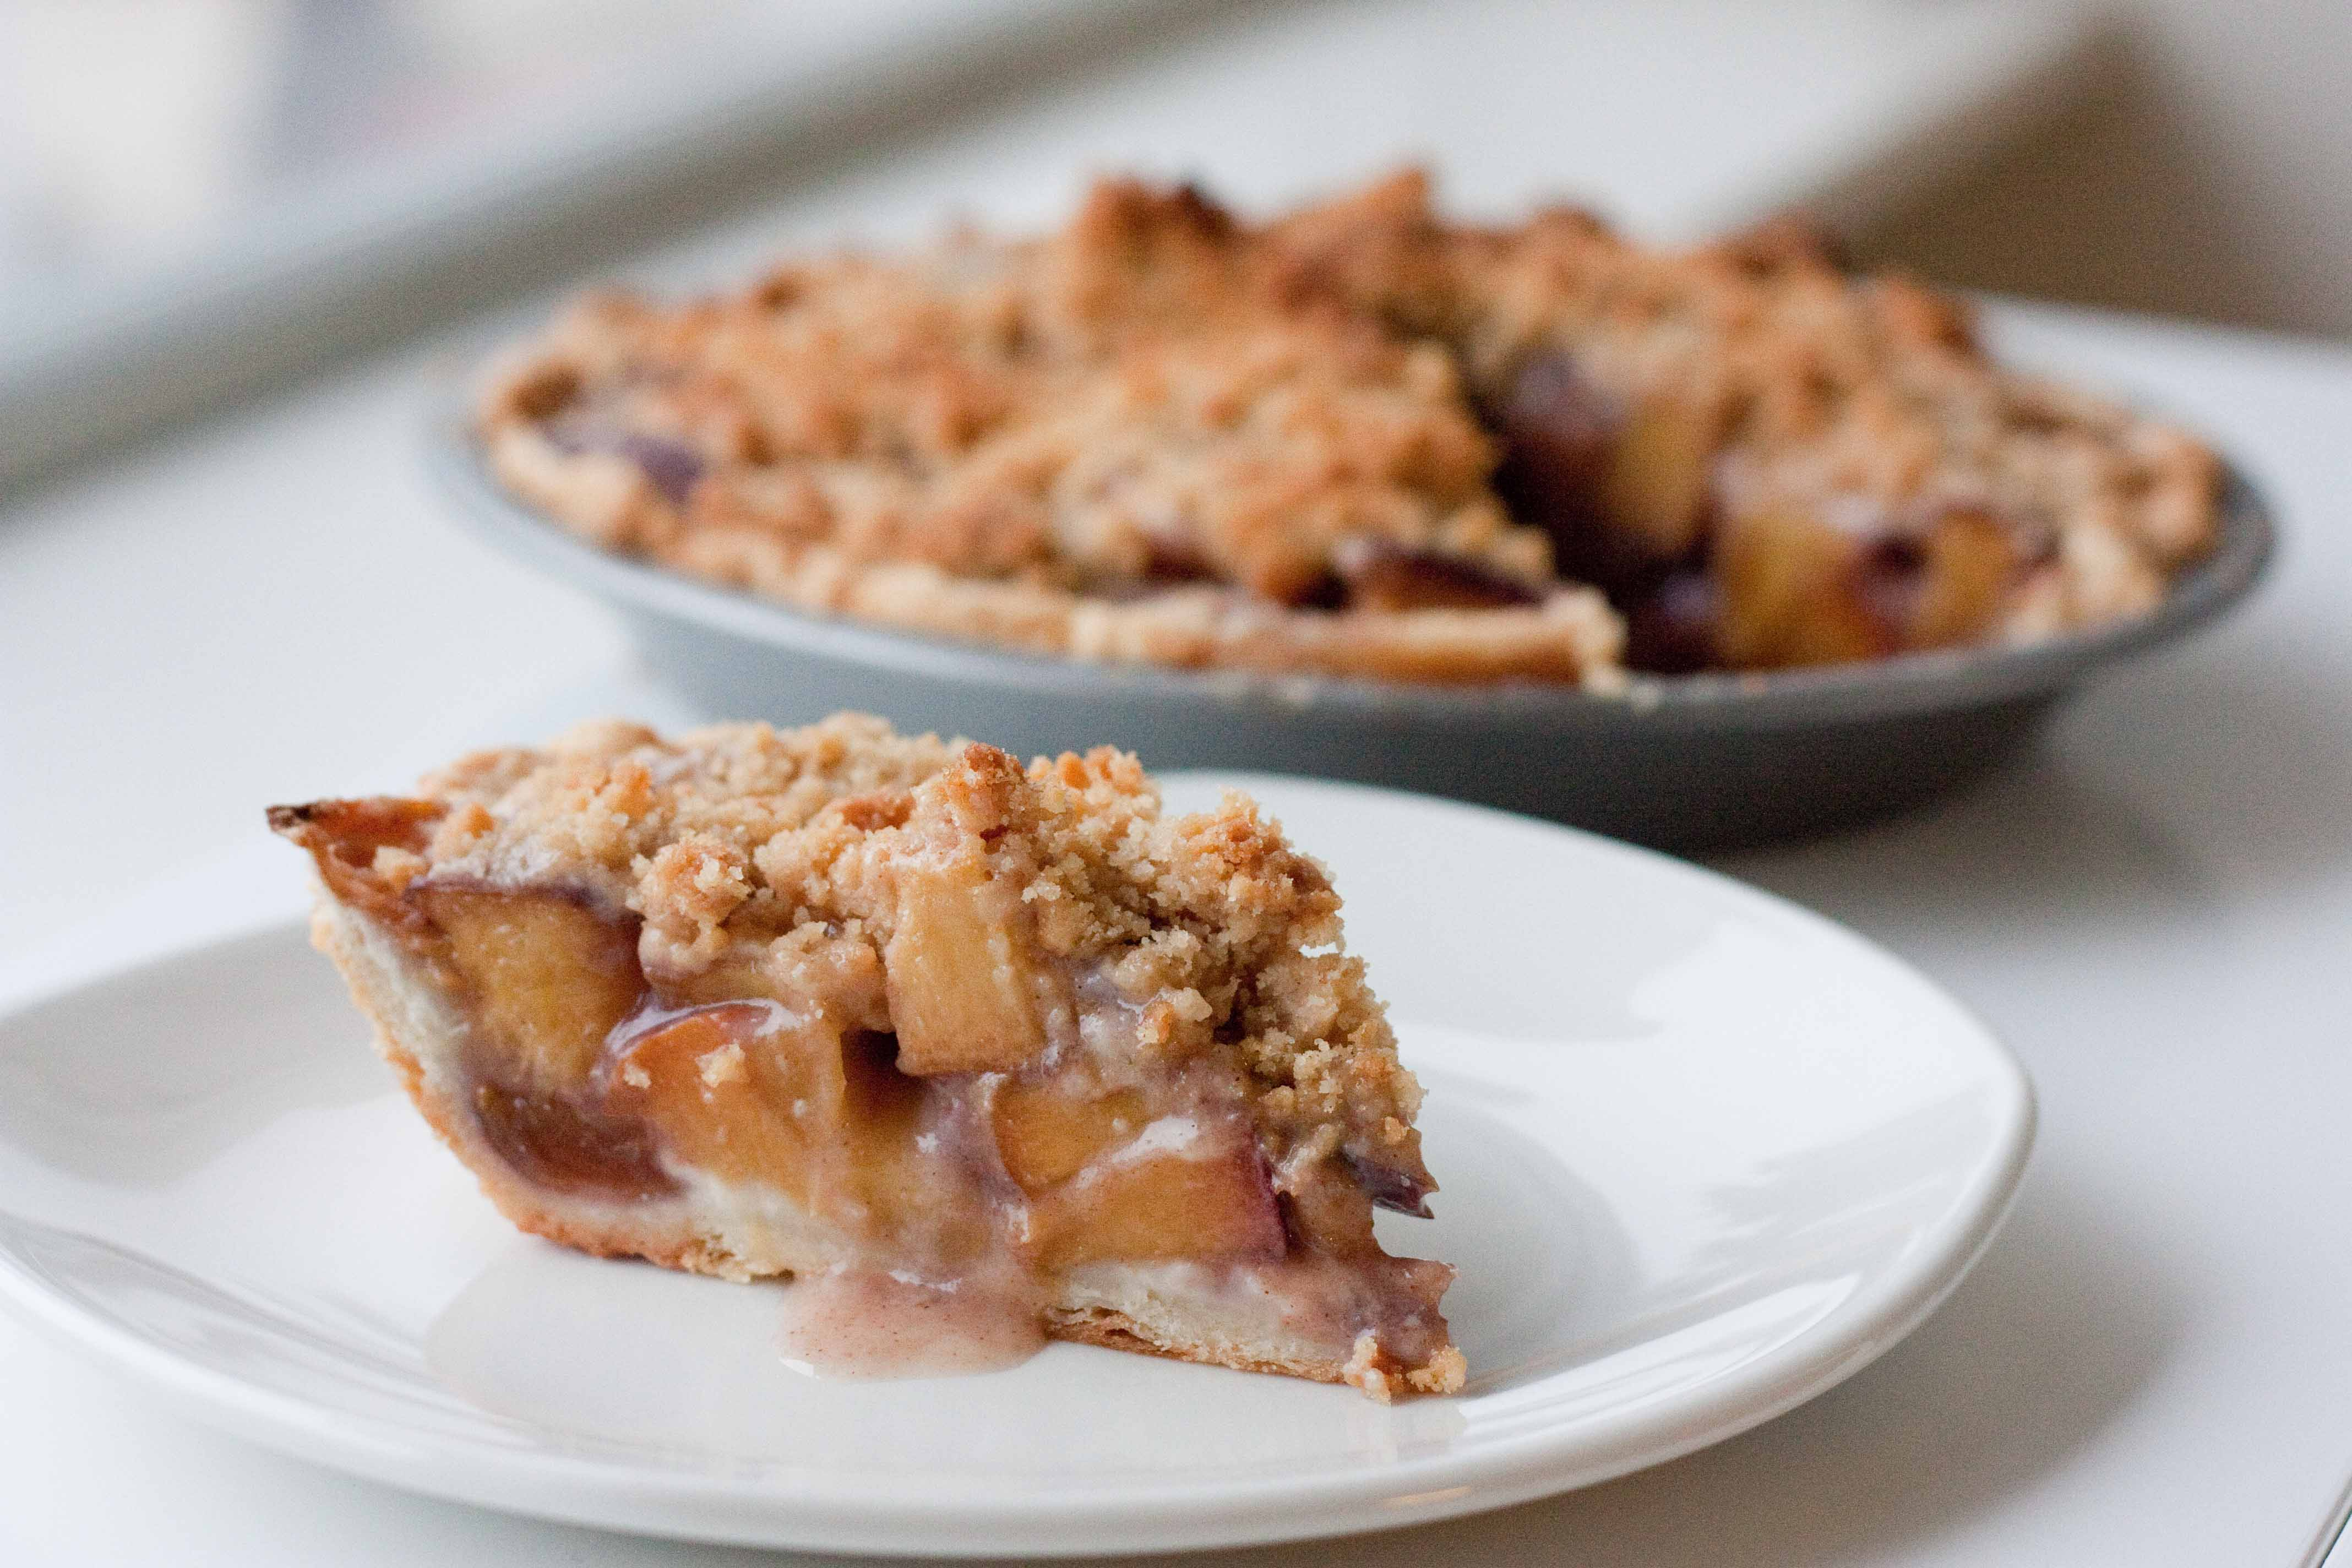 Bourbon Peach Pie with Crumble Topping | Foodologie